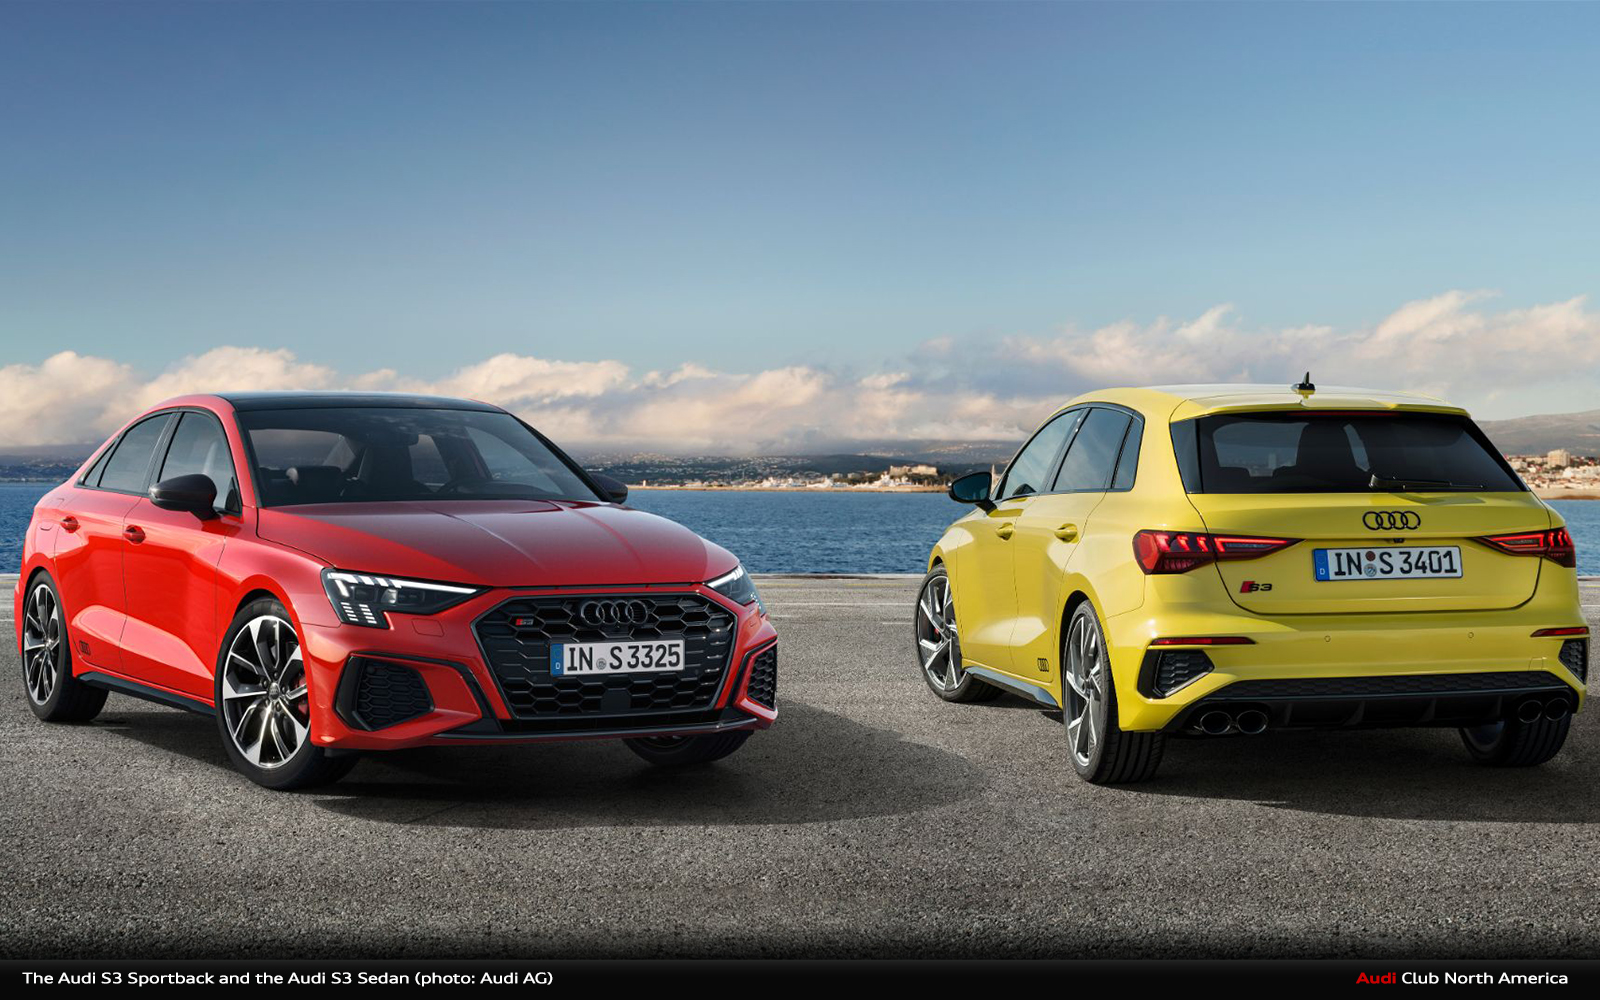 More Dynamic, More Power, More Driving Pleasure: The Audi S3 Sportback and the Audi S3 Sedan